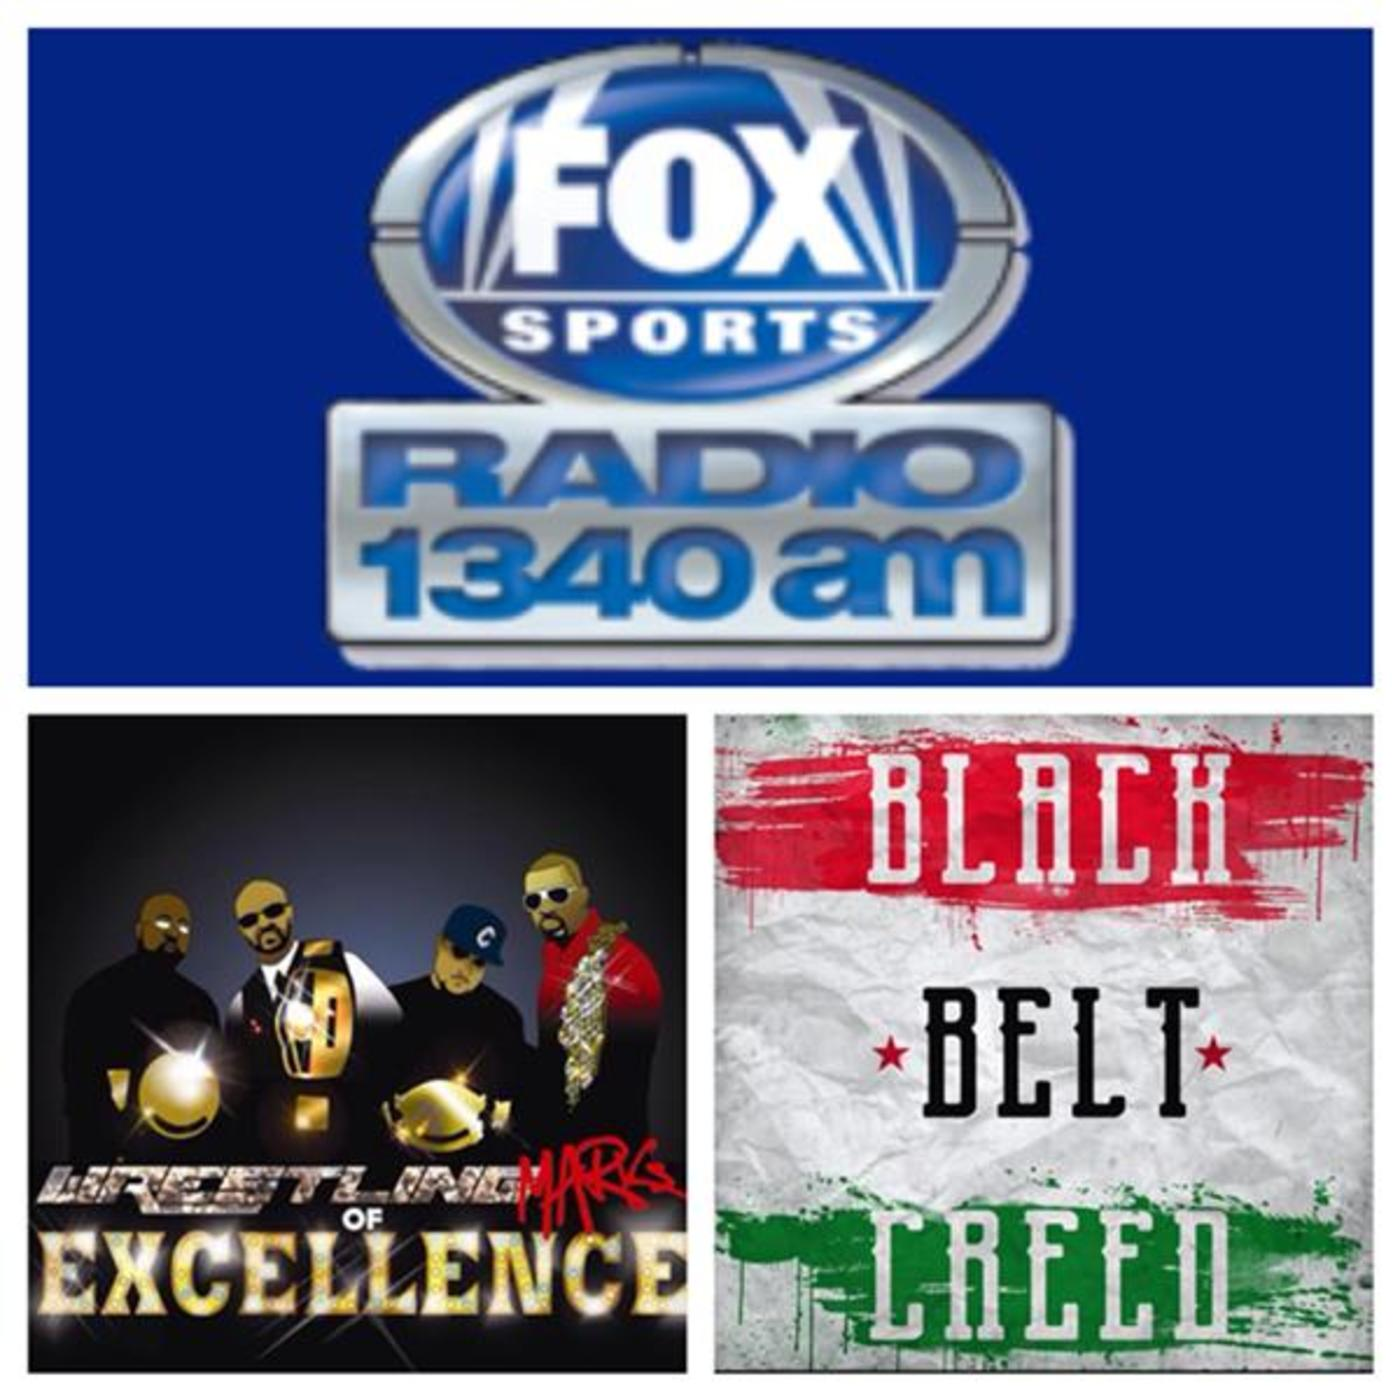 FOX SPORTS RADIO 1340 WMER NETWORK